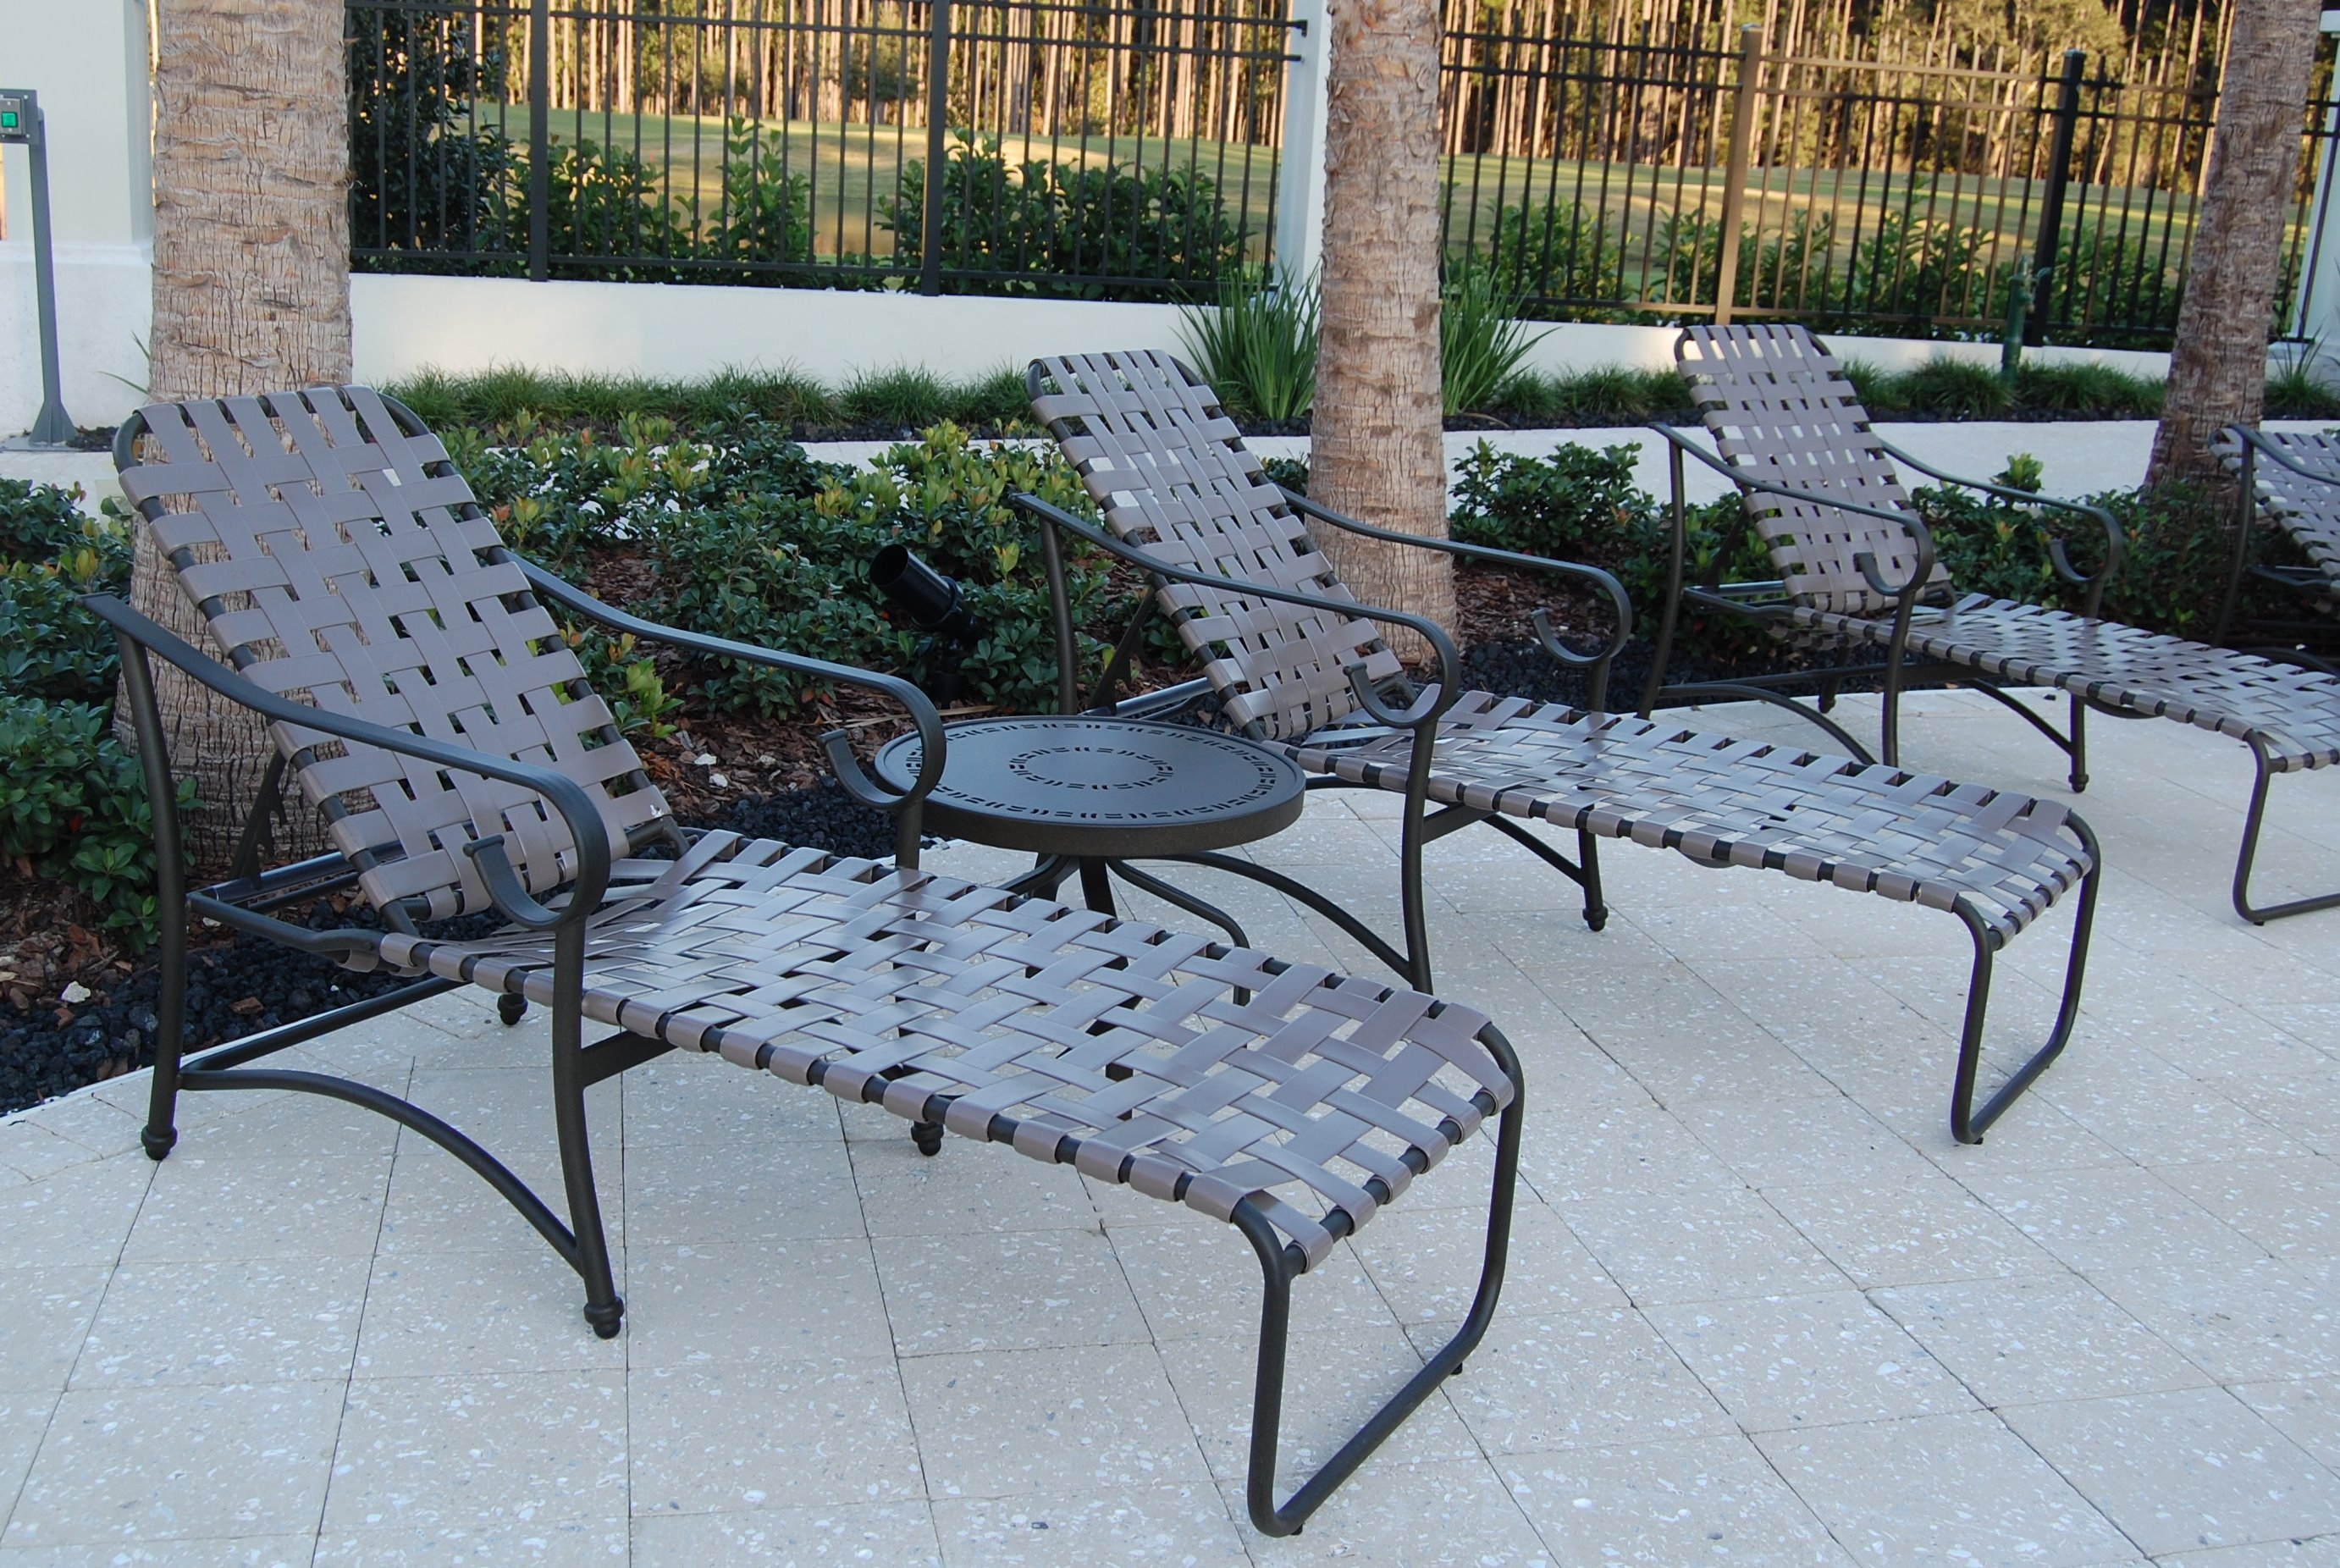 Plastic strap lounge chairs - West Wind Style Aluminum Vinyl Strap Chaise Lounge Chair W Arms